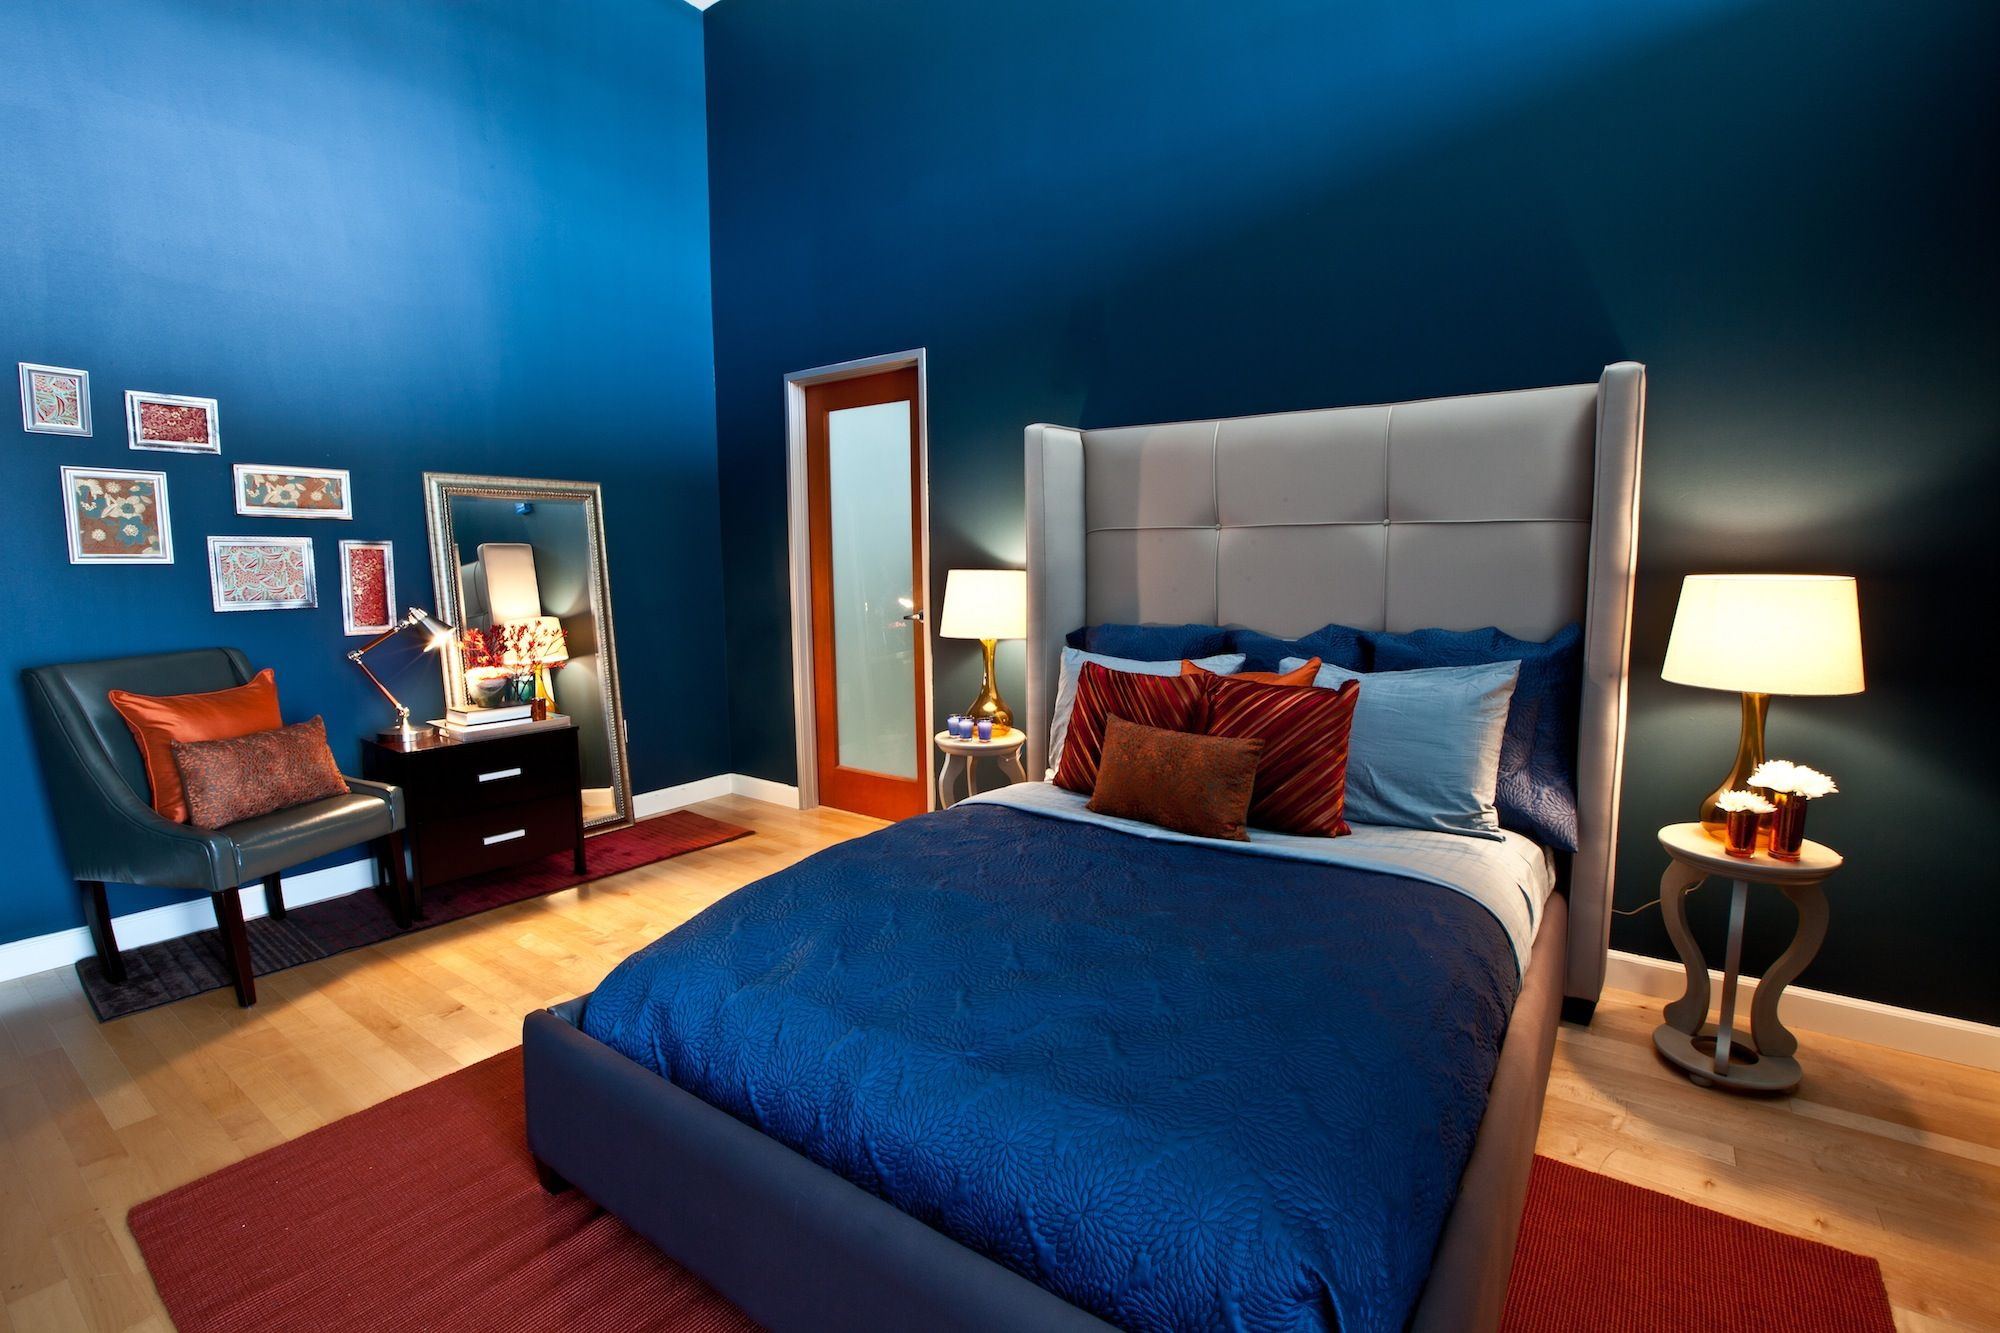 Bedroom designs for couples in blue - Blue Bedroom Ideas 3195